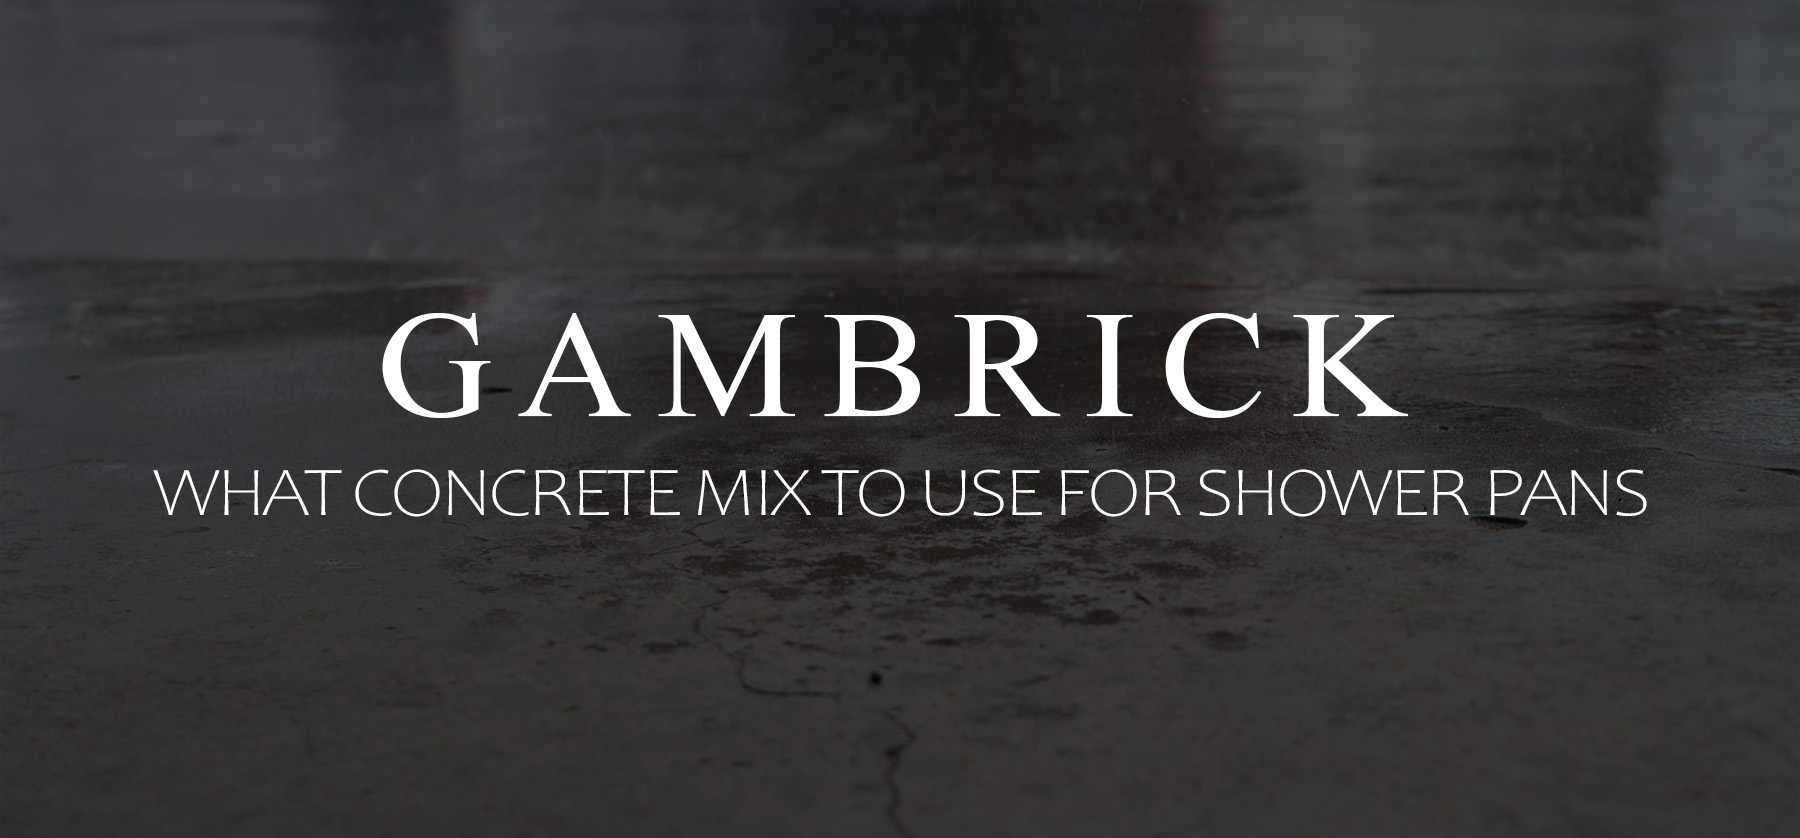 what concrete mix to use for shower pans banner pic